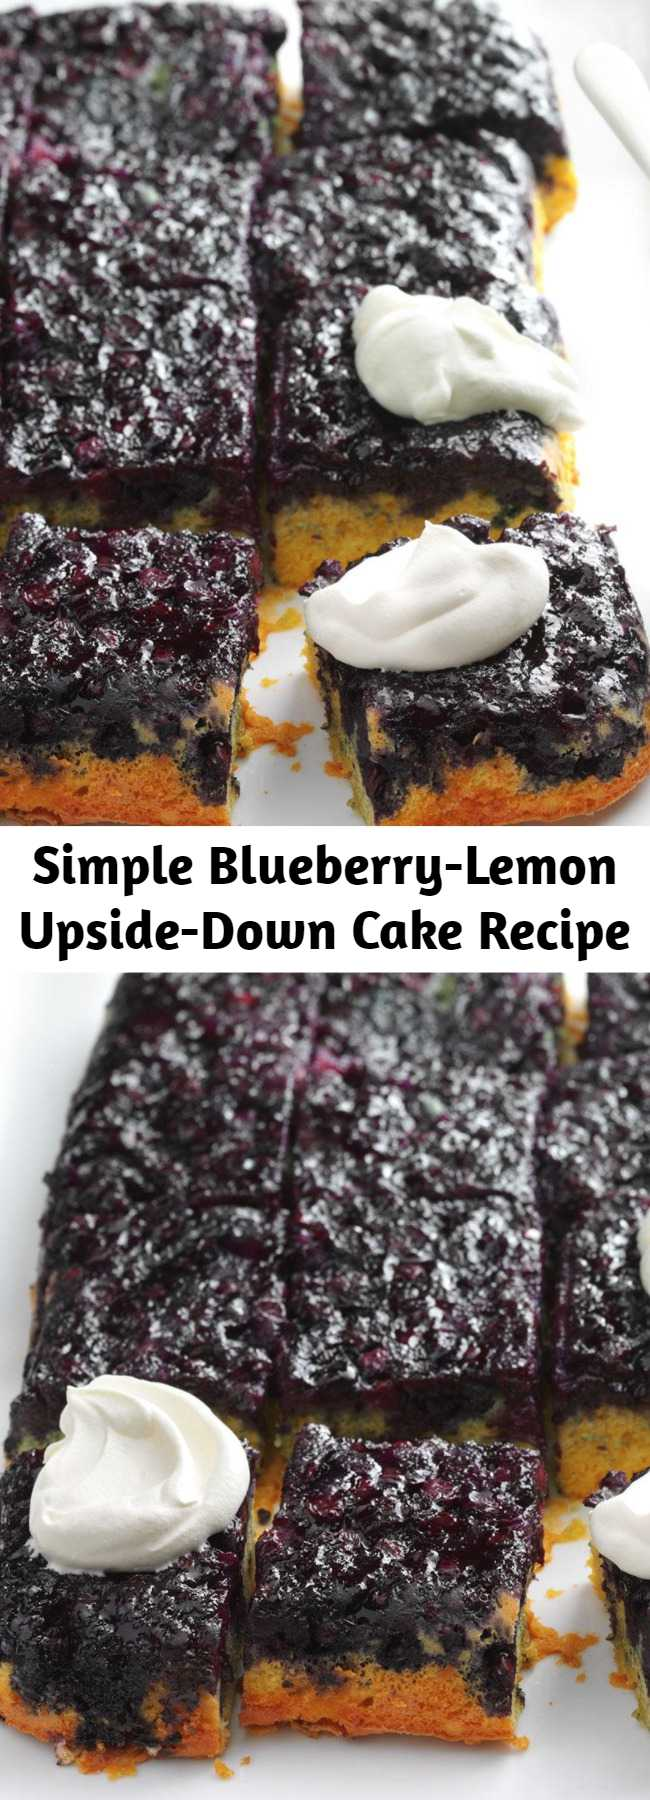 Simple Blueberry-Lemon Upside-Down Cake Recipe - We love a good upside-down cake, and this our favorite one yet. The blueberries get super-juicy as they bake—it's the perfect representation of spring!